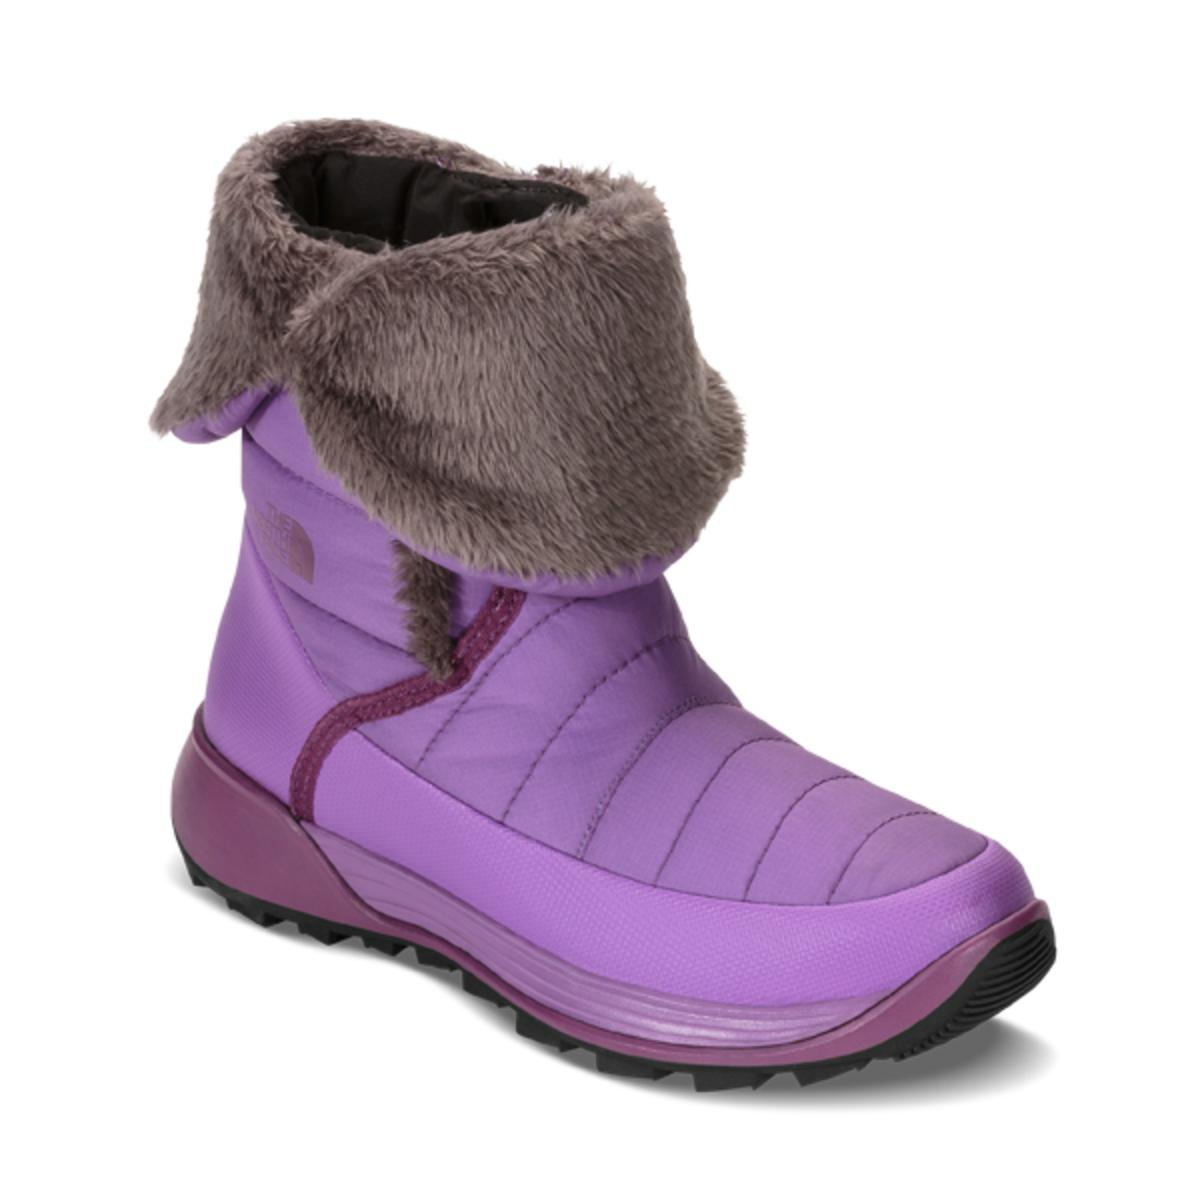 6b740ccb7 The North Face Youth Amore II Boot